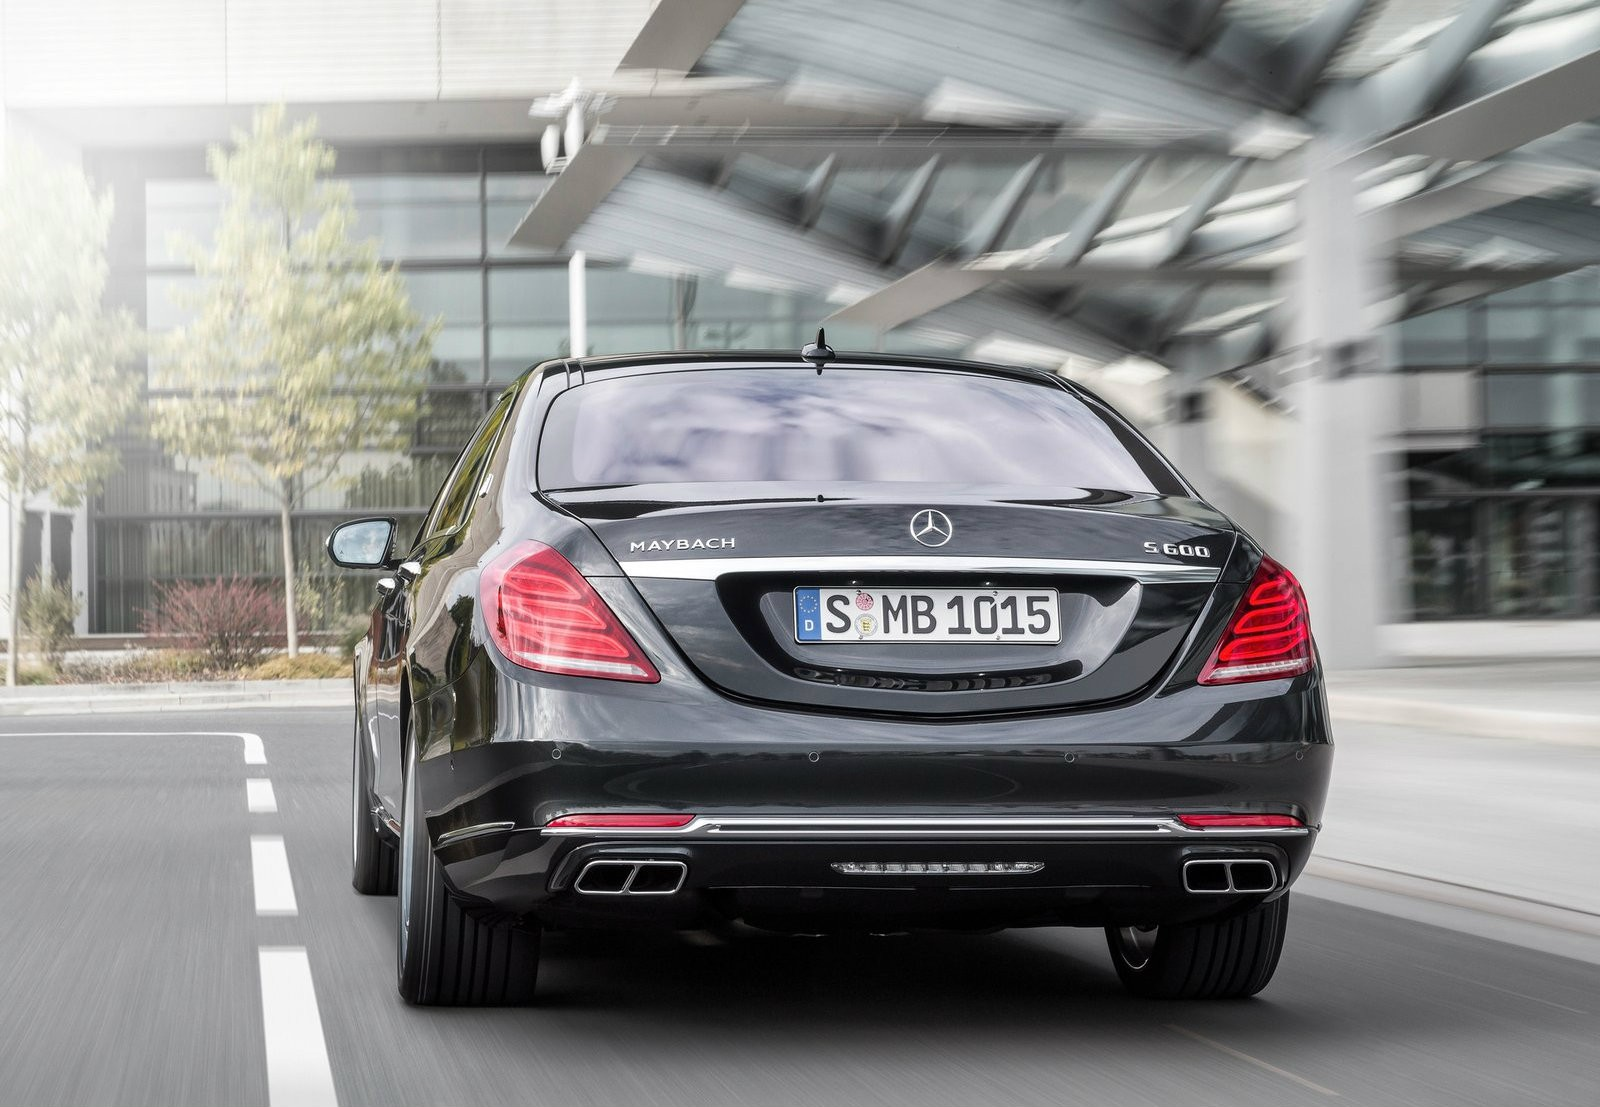 Mercedes Maybach S500 Priced At 134 053 S600 Is 187 841